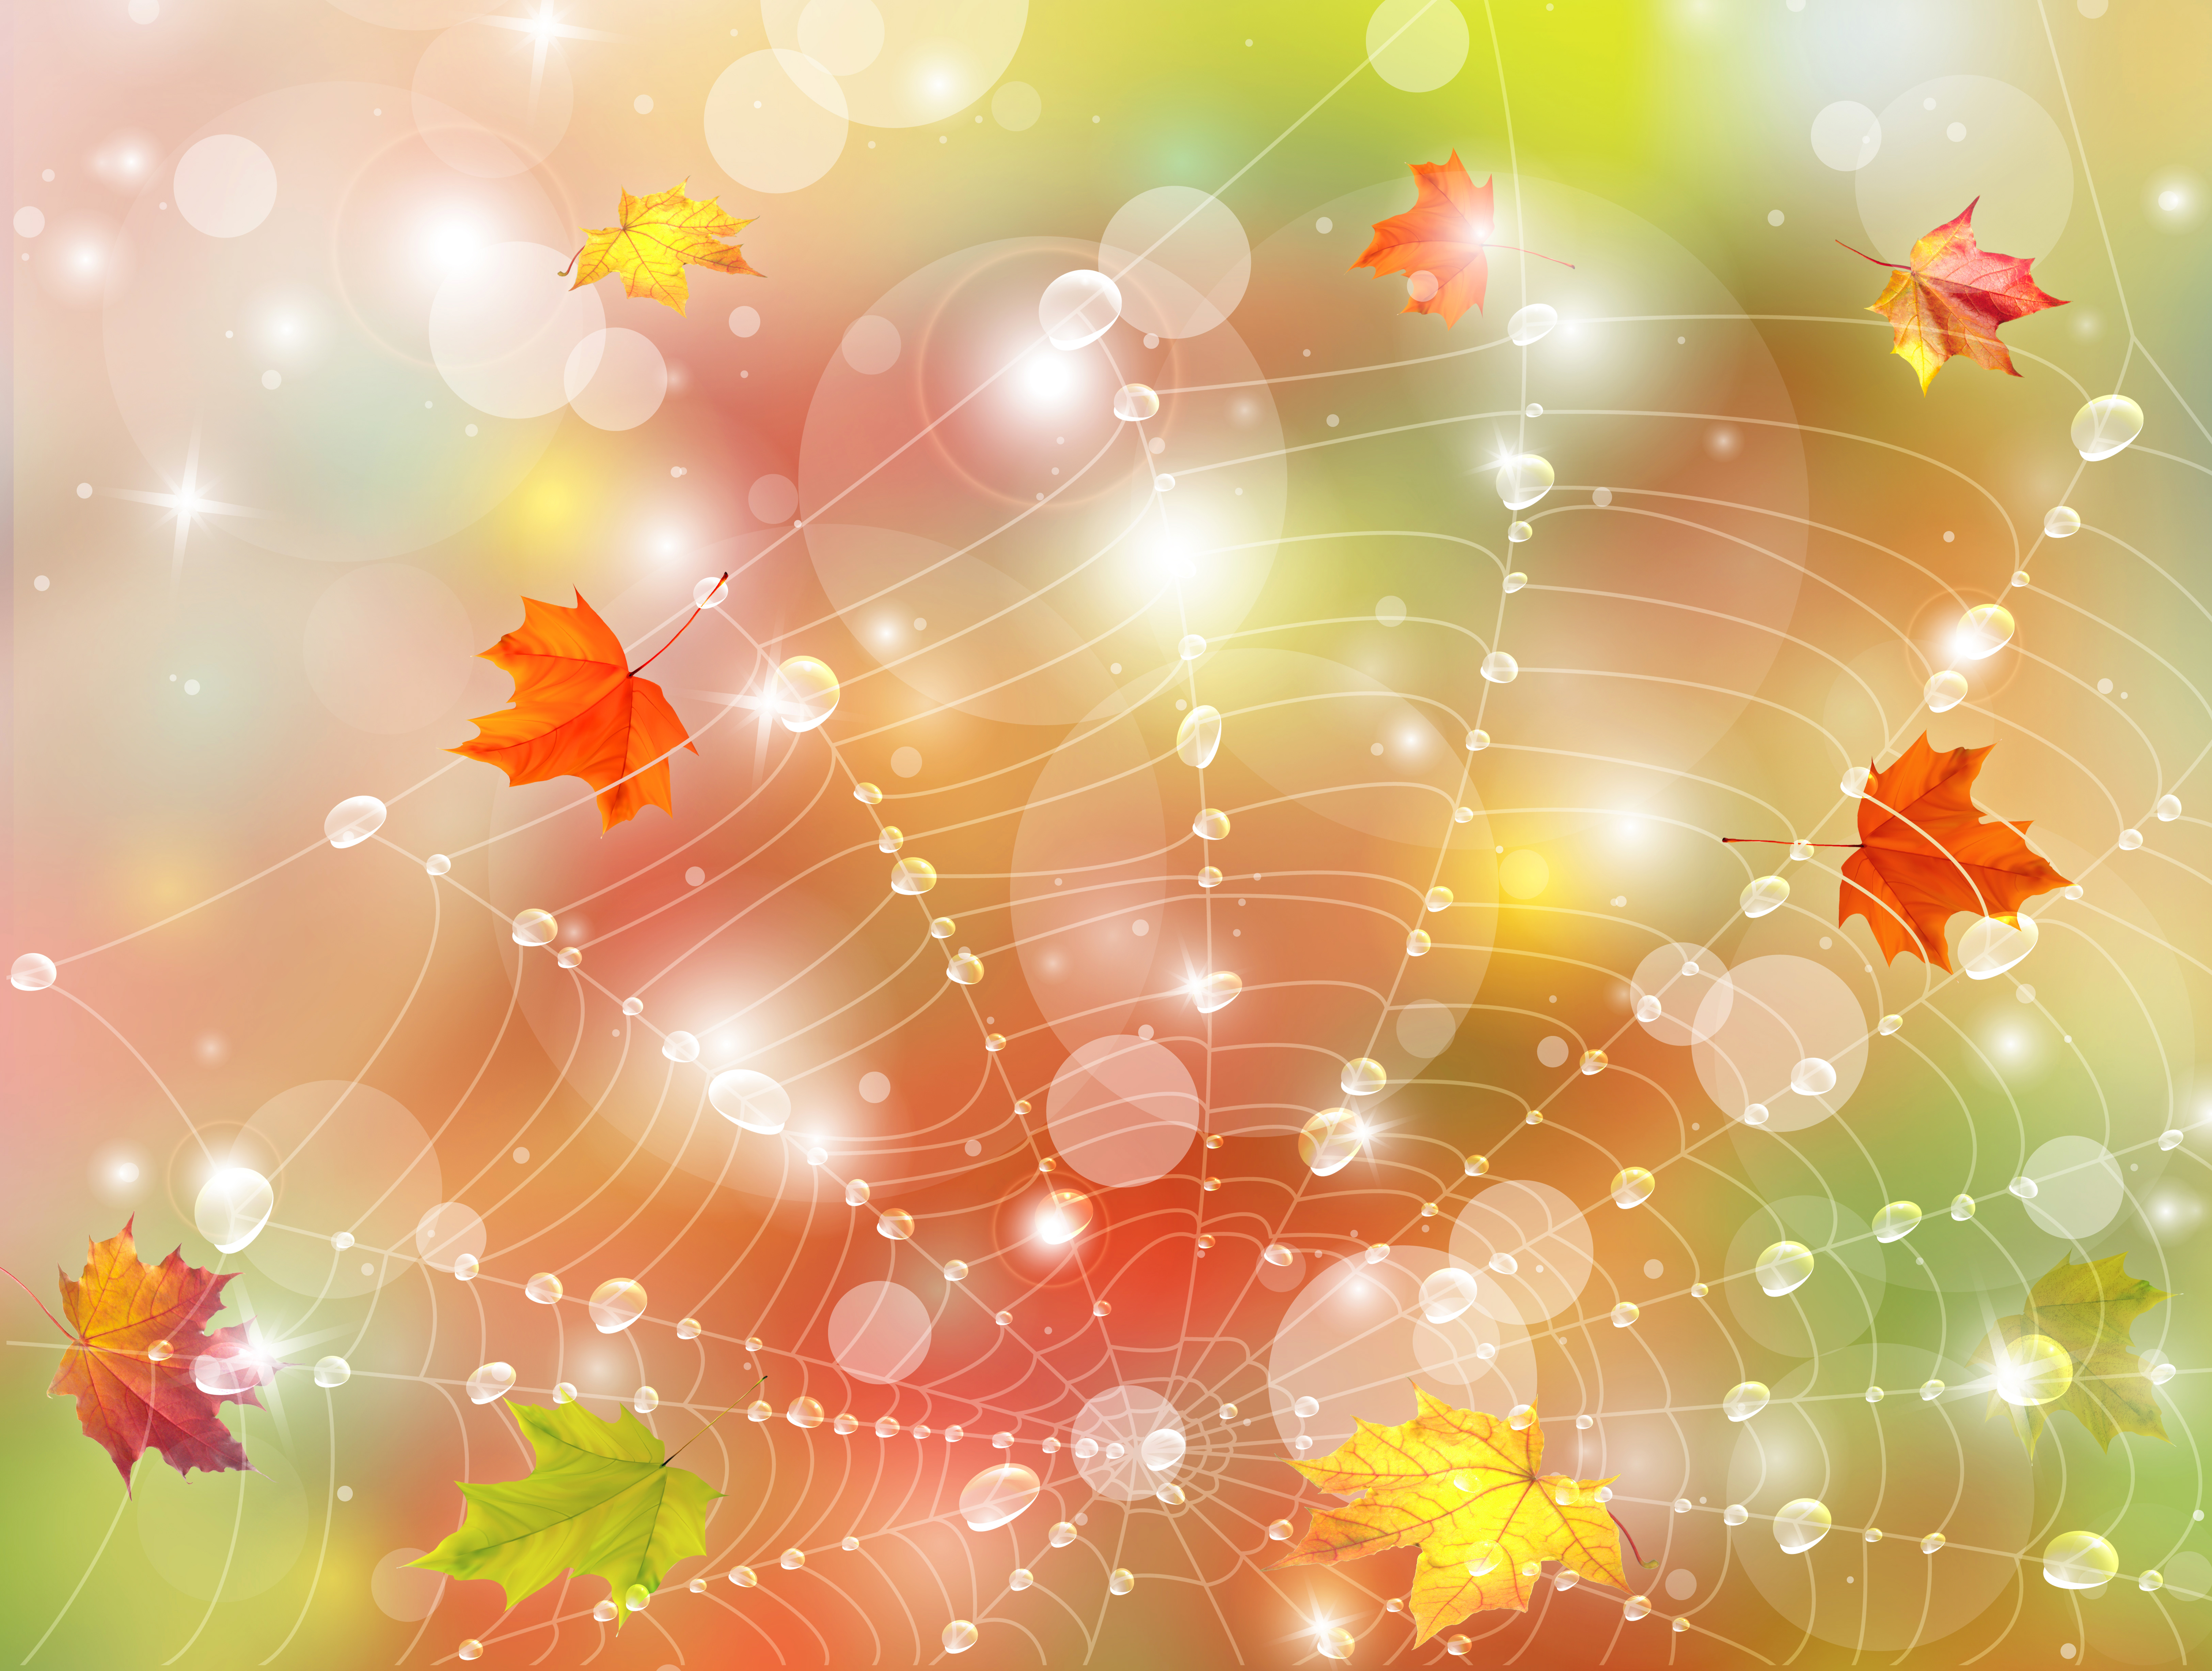 Hd Wallpaper Texture Fall Harvest Fall Background With Leaves And Web Gallery Yopriceville